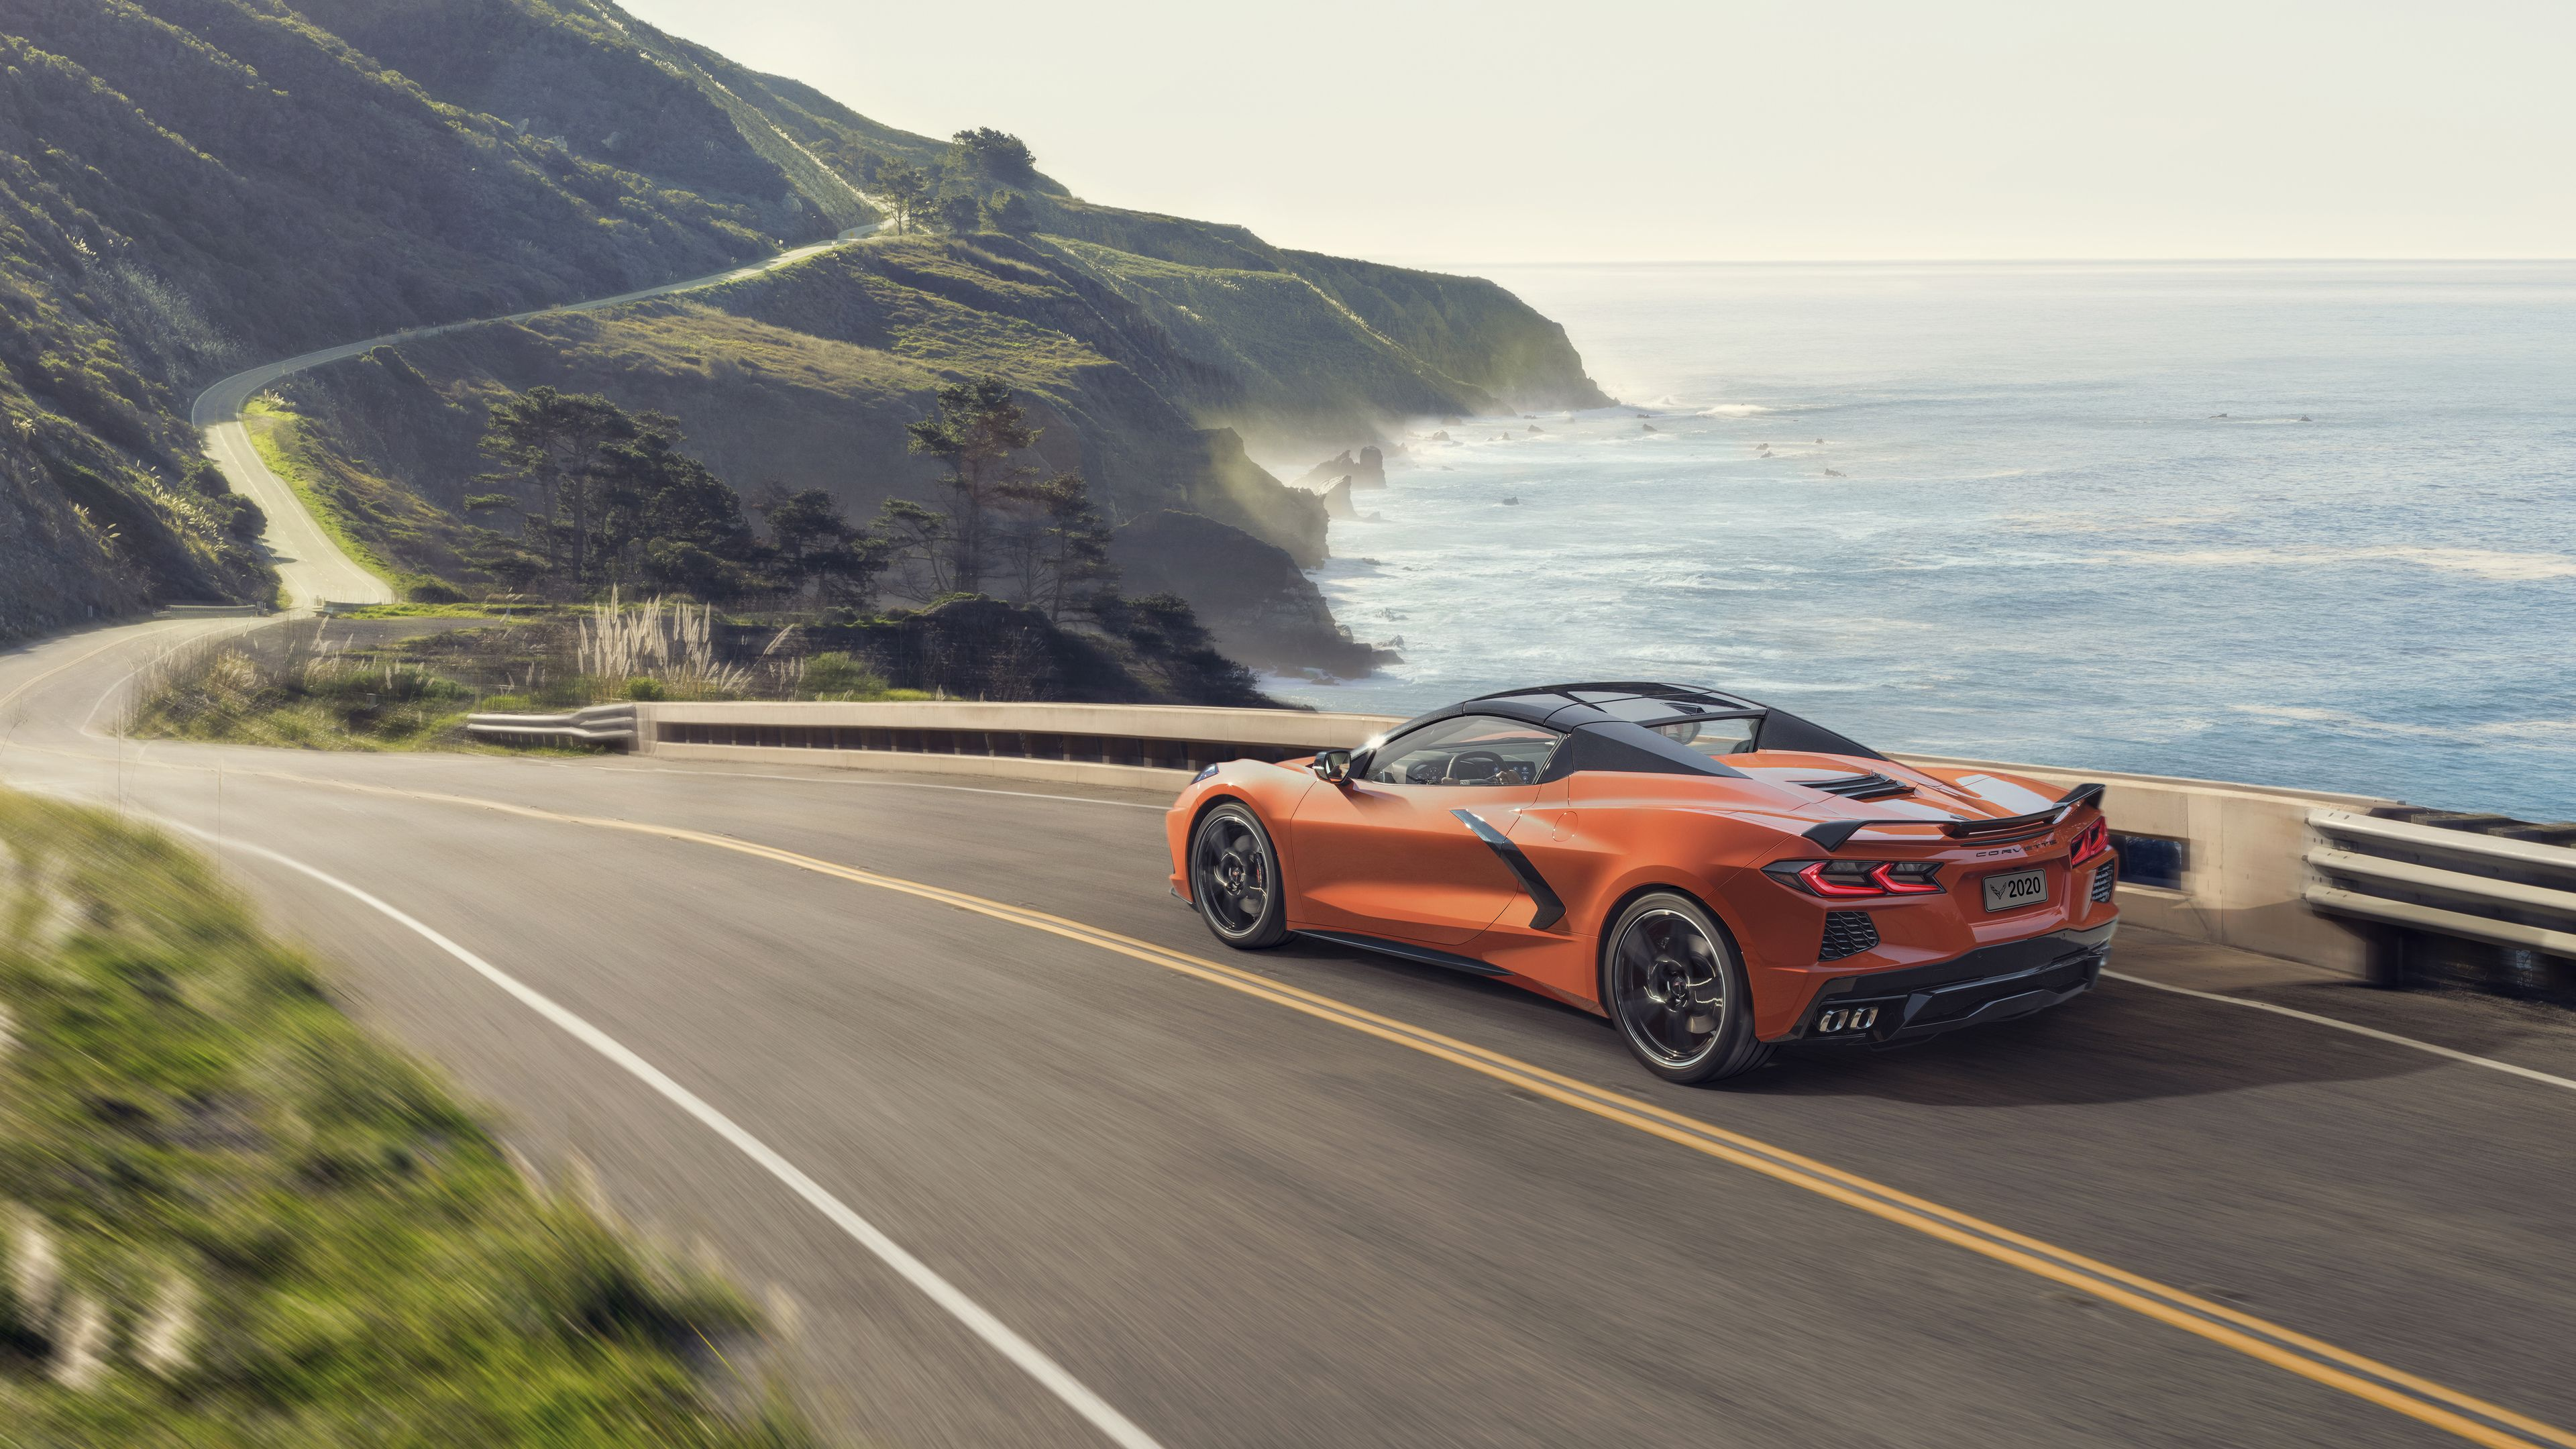 Chevrolet Corvette C8 Stingray Convertible 2020 Hd Wallpapers Chevrolet Wallpapers Chevrolet Corvet Corvette Convertible Chevrolet Corvette Corvette Stingray